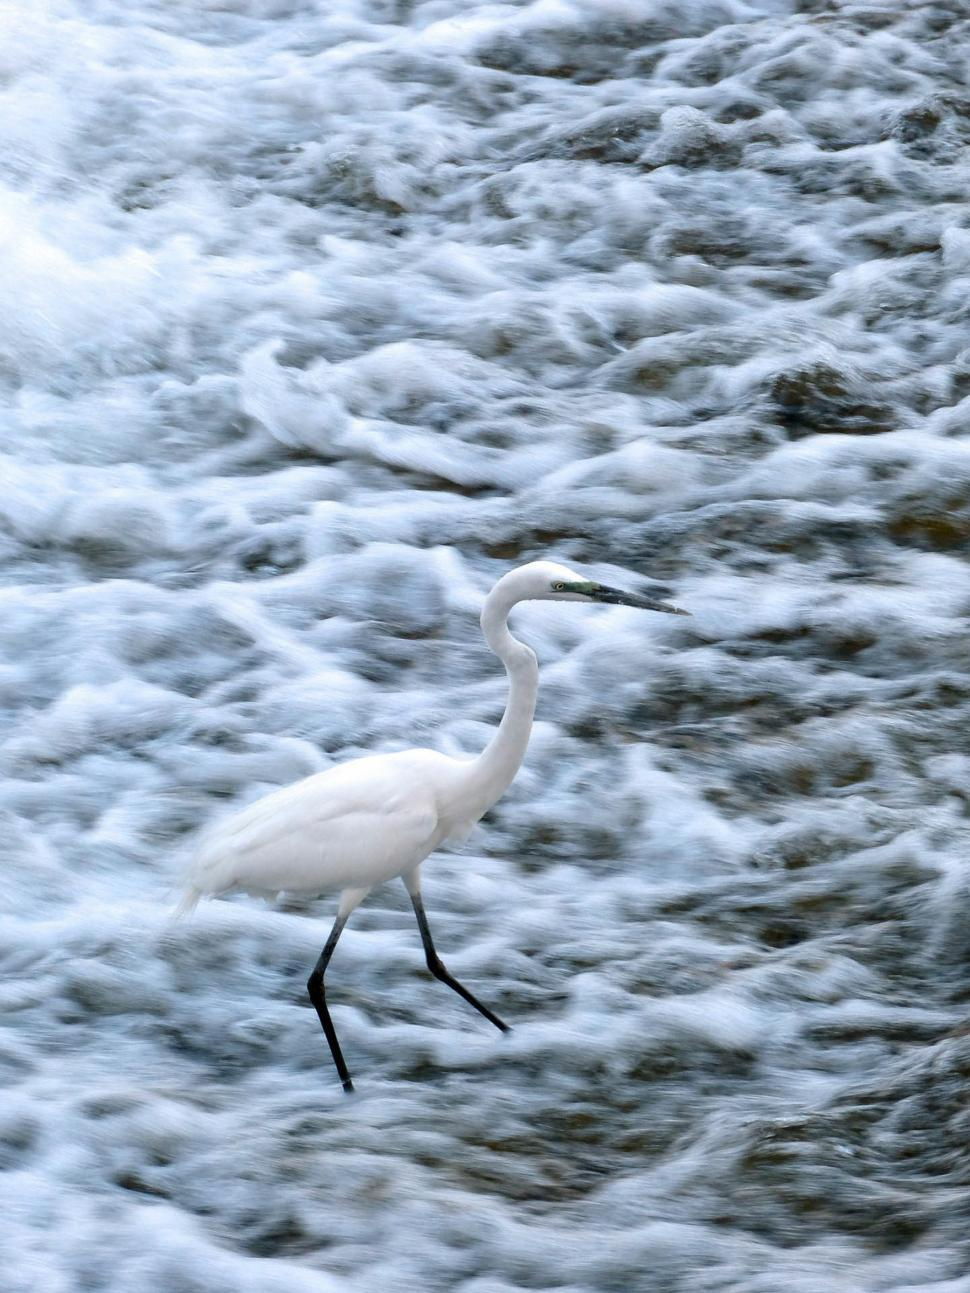 Download Free Stock Photo of Snowy Egret in water